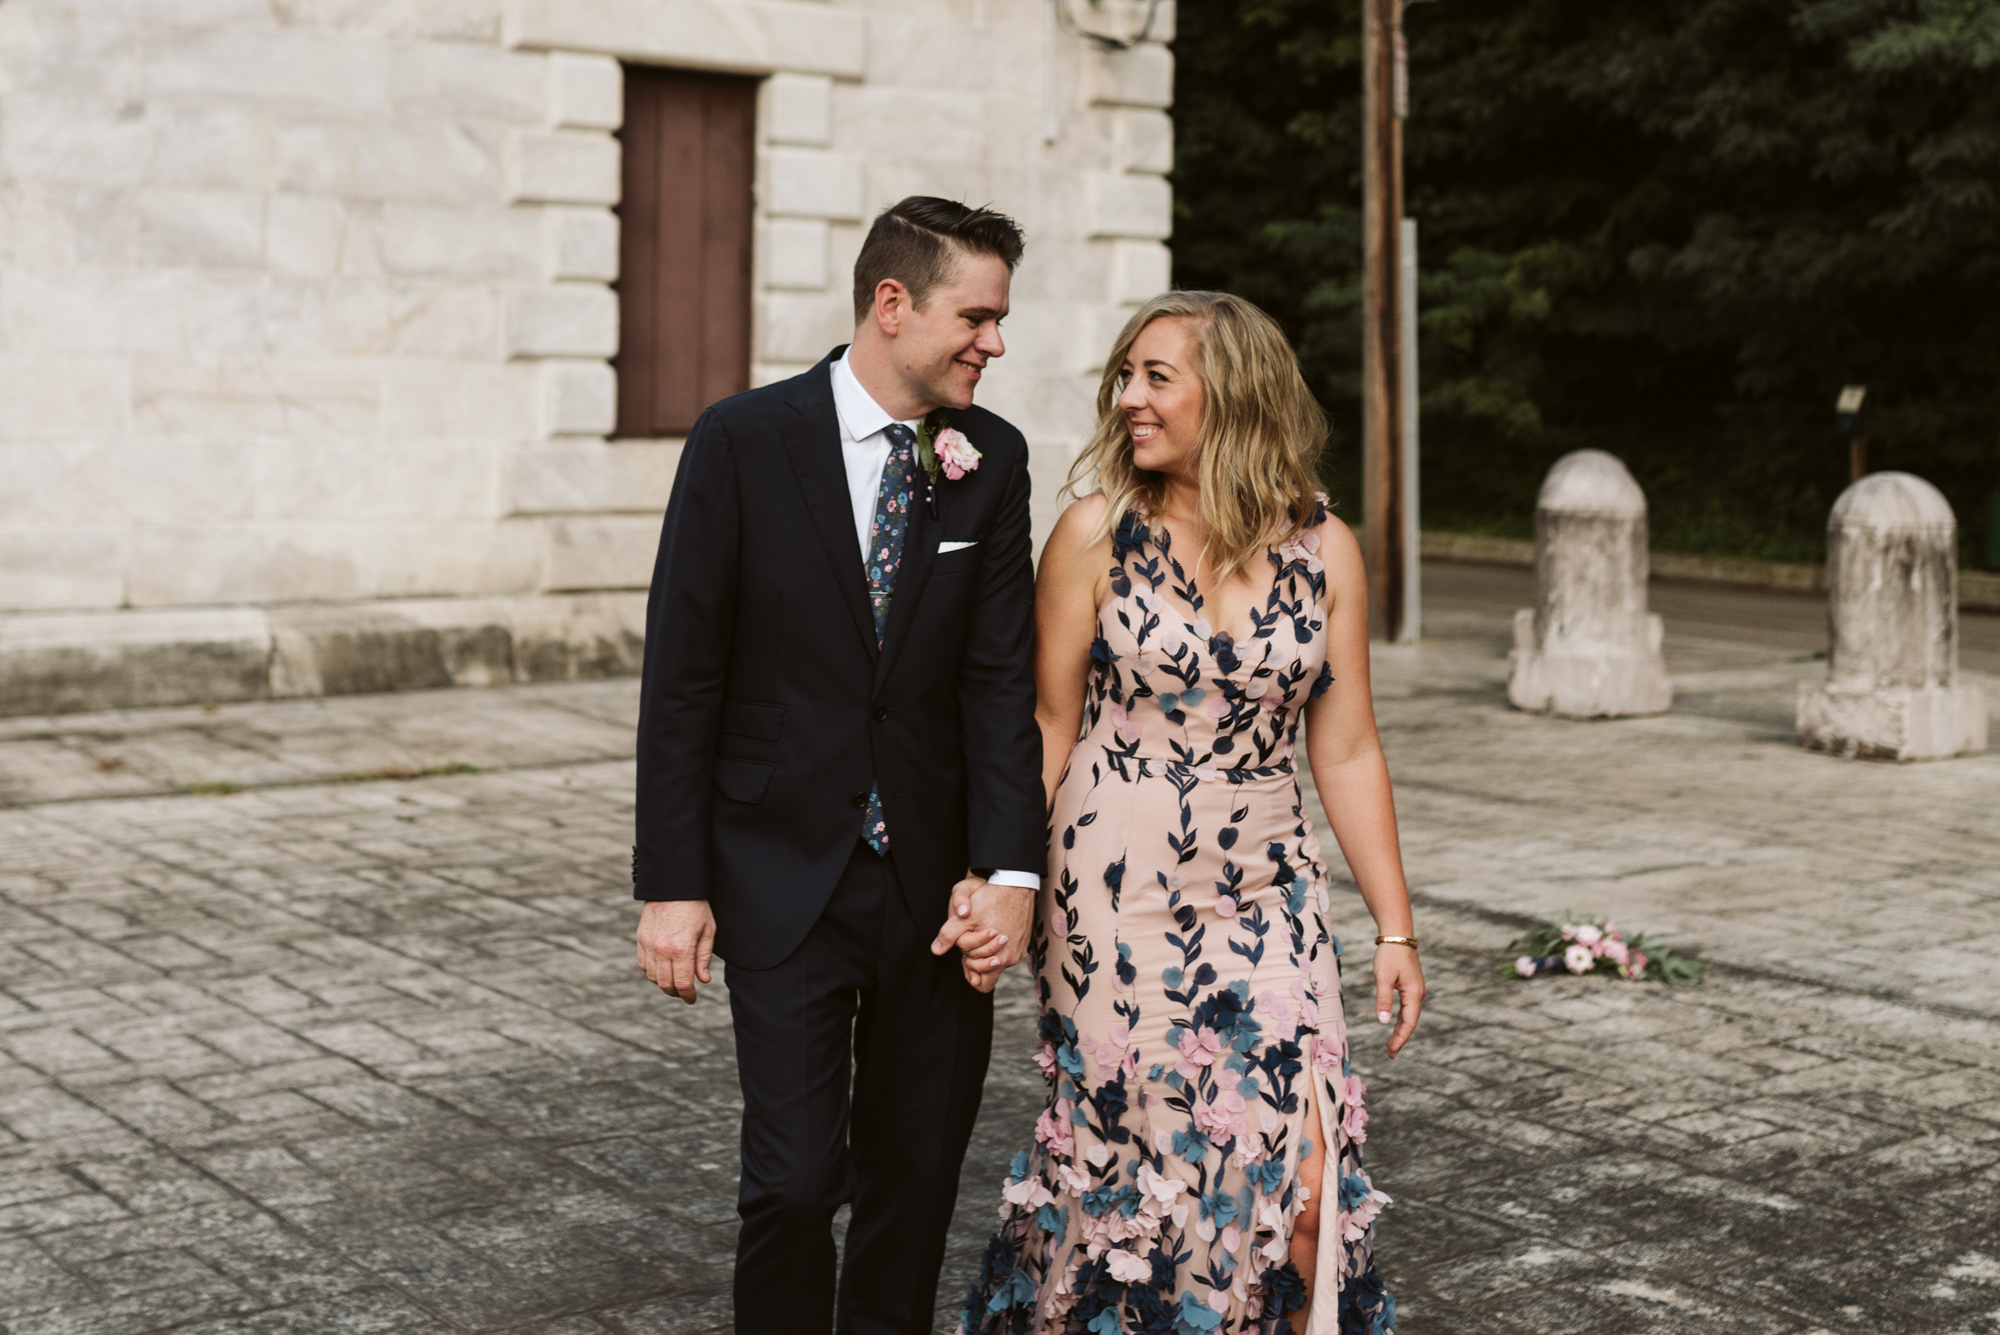 Pop-up Ceremony, Outdoor Wedding, Casual, Simple, Lake Roland, Baltimore, Maryland Wedding Photographer, Laid Back, Couple Walking and Laughing, Marchesa Notte Dress